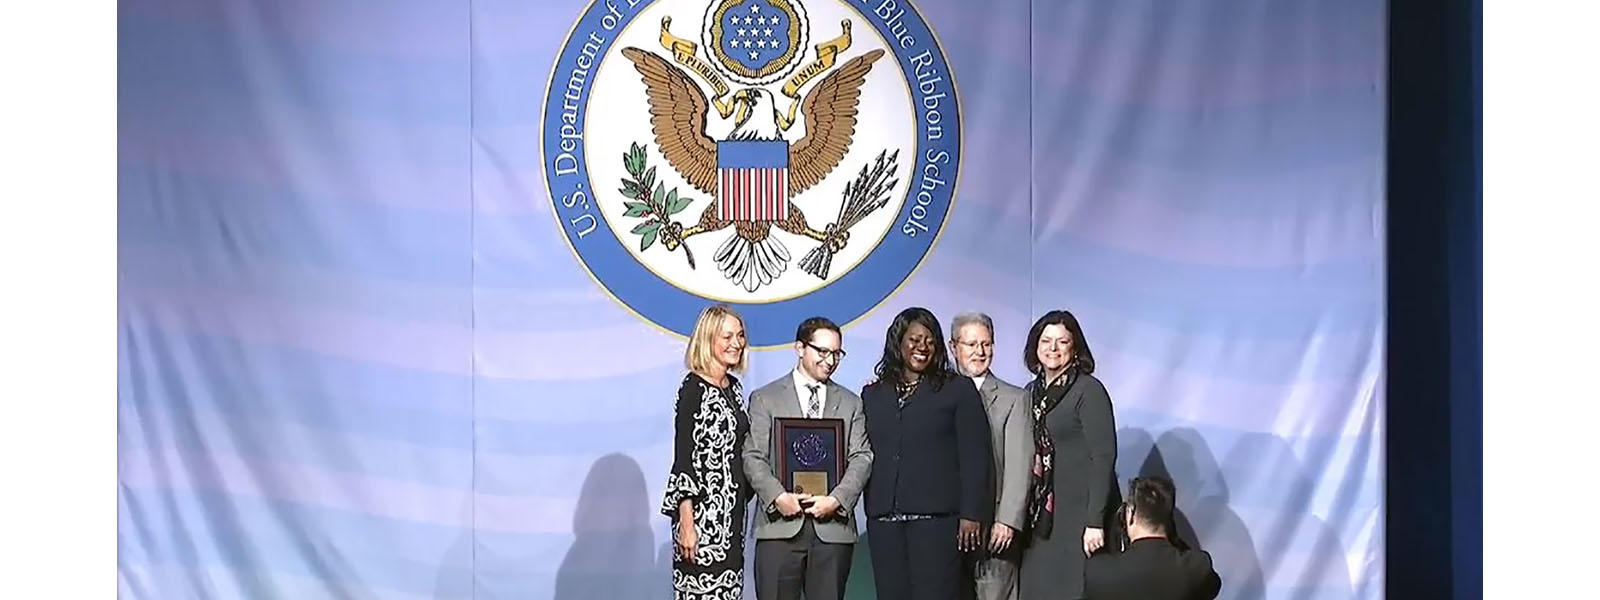 LHS honored as National Blue Ribbon School